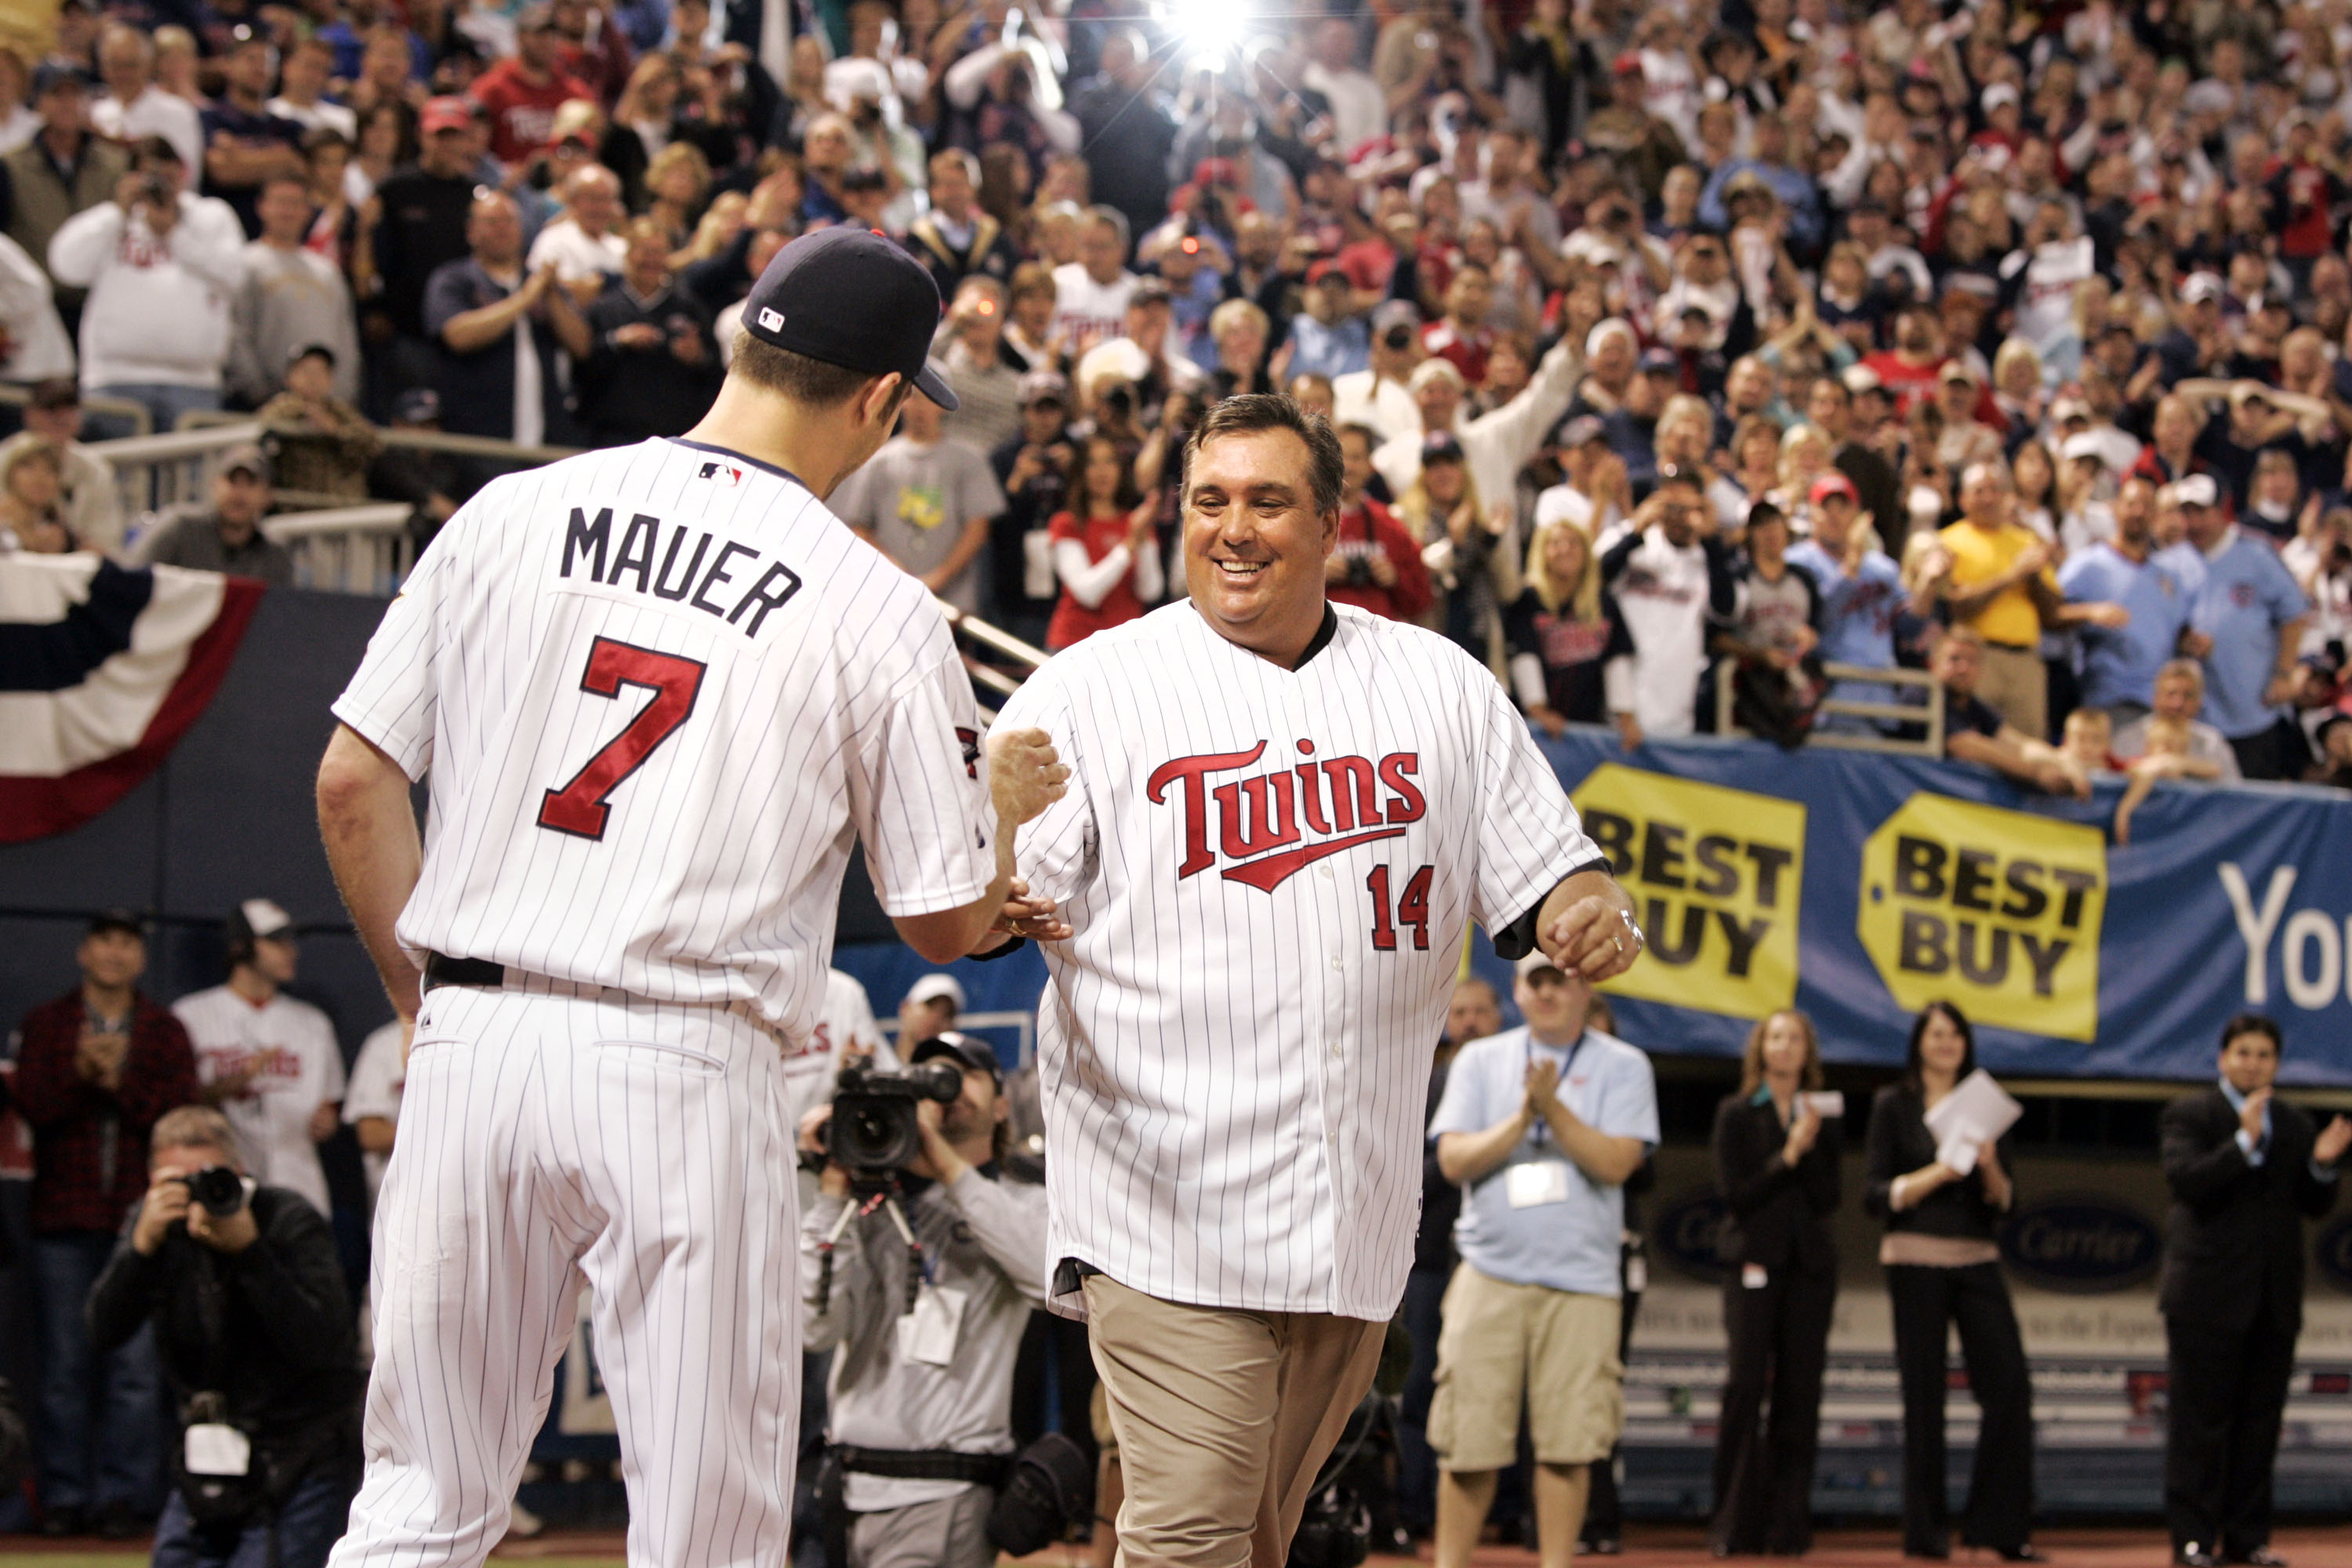 When do you think was the last time Kent Hrbek tucked in a shirt?